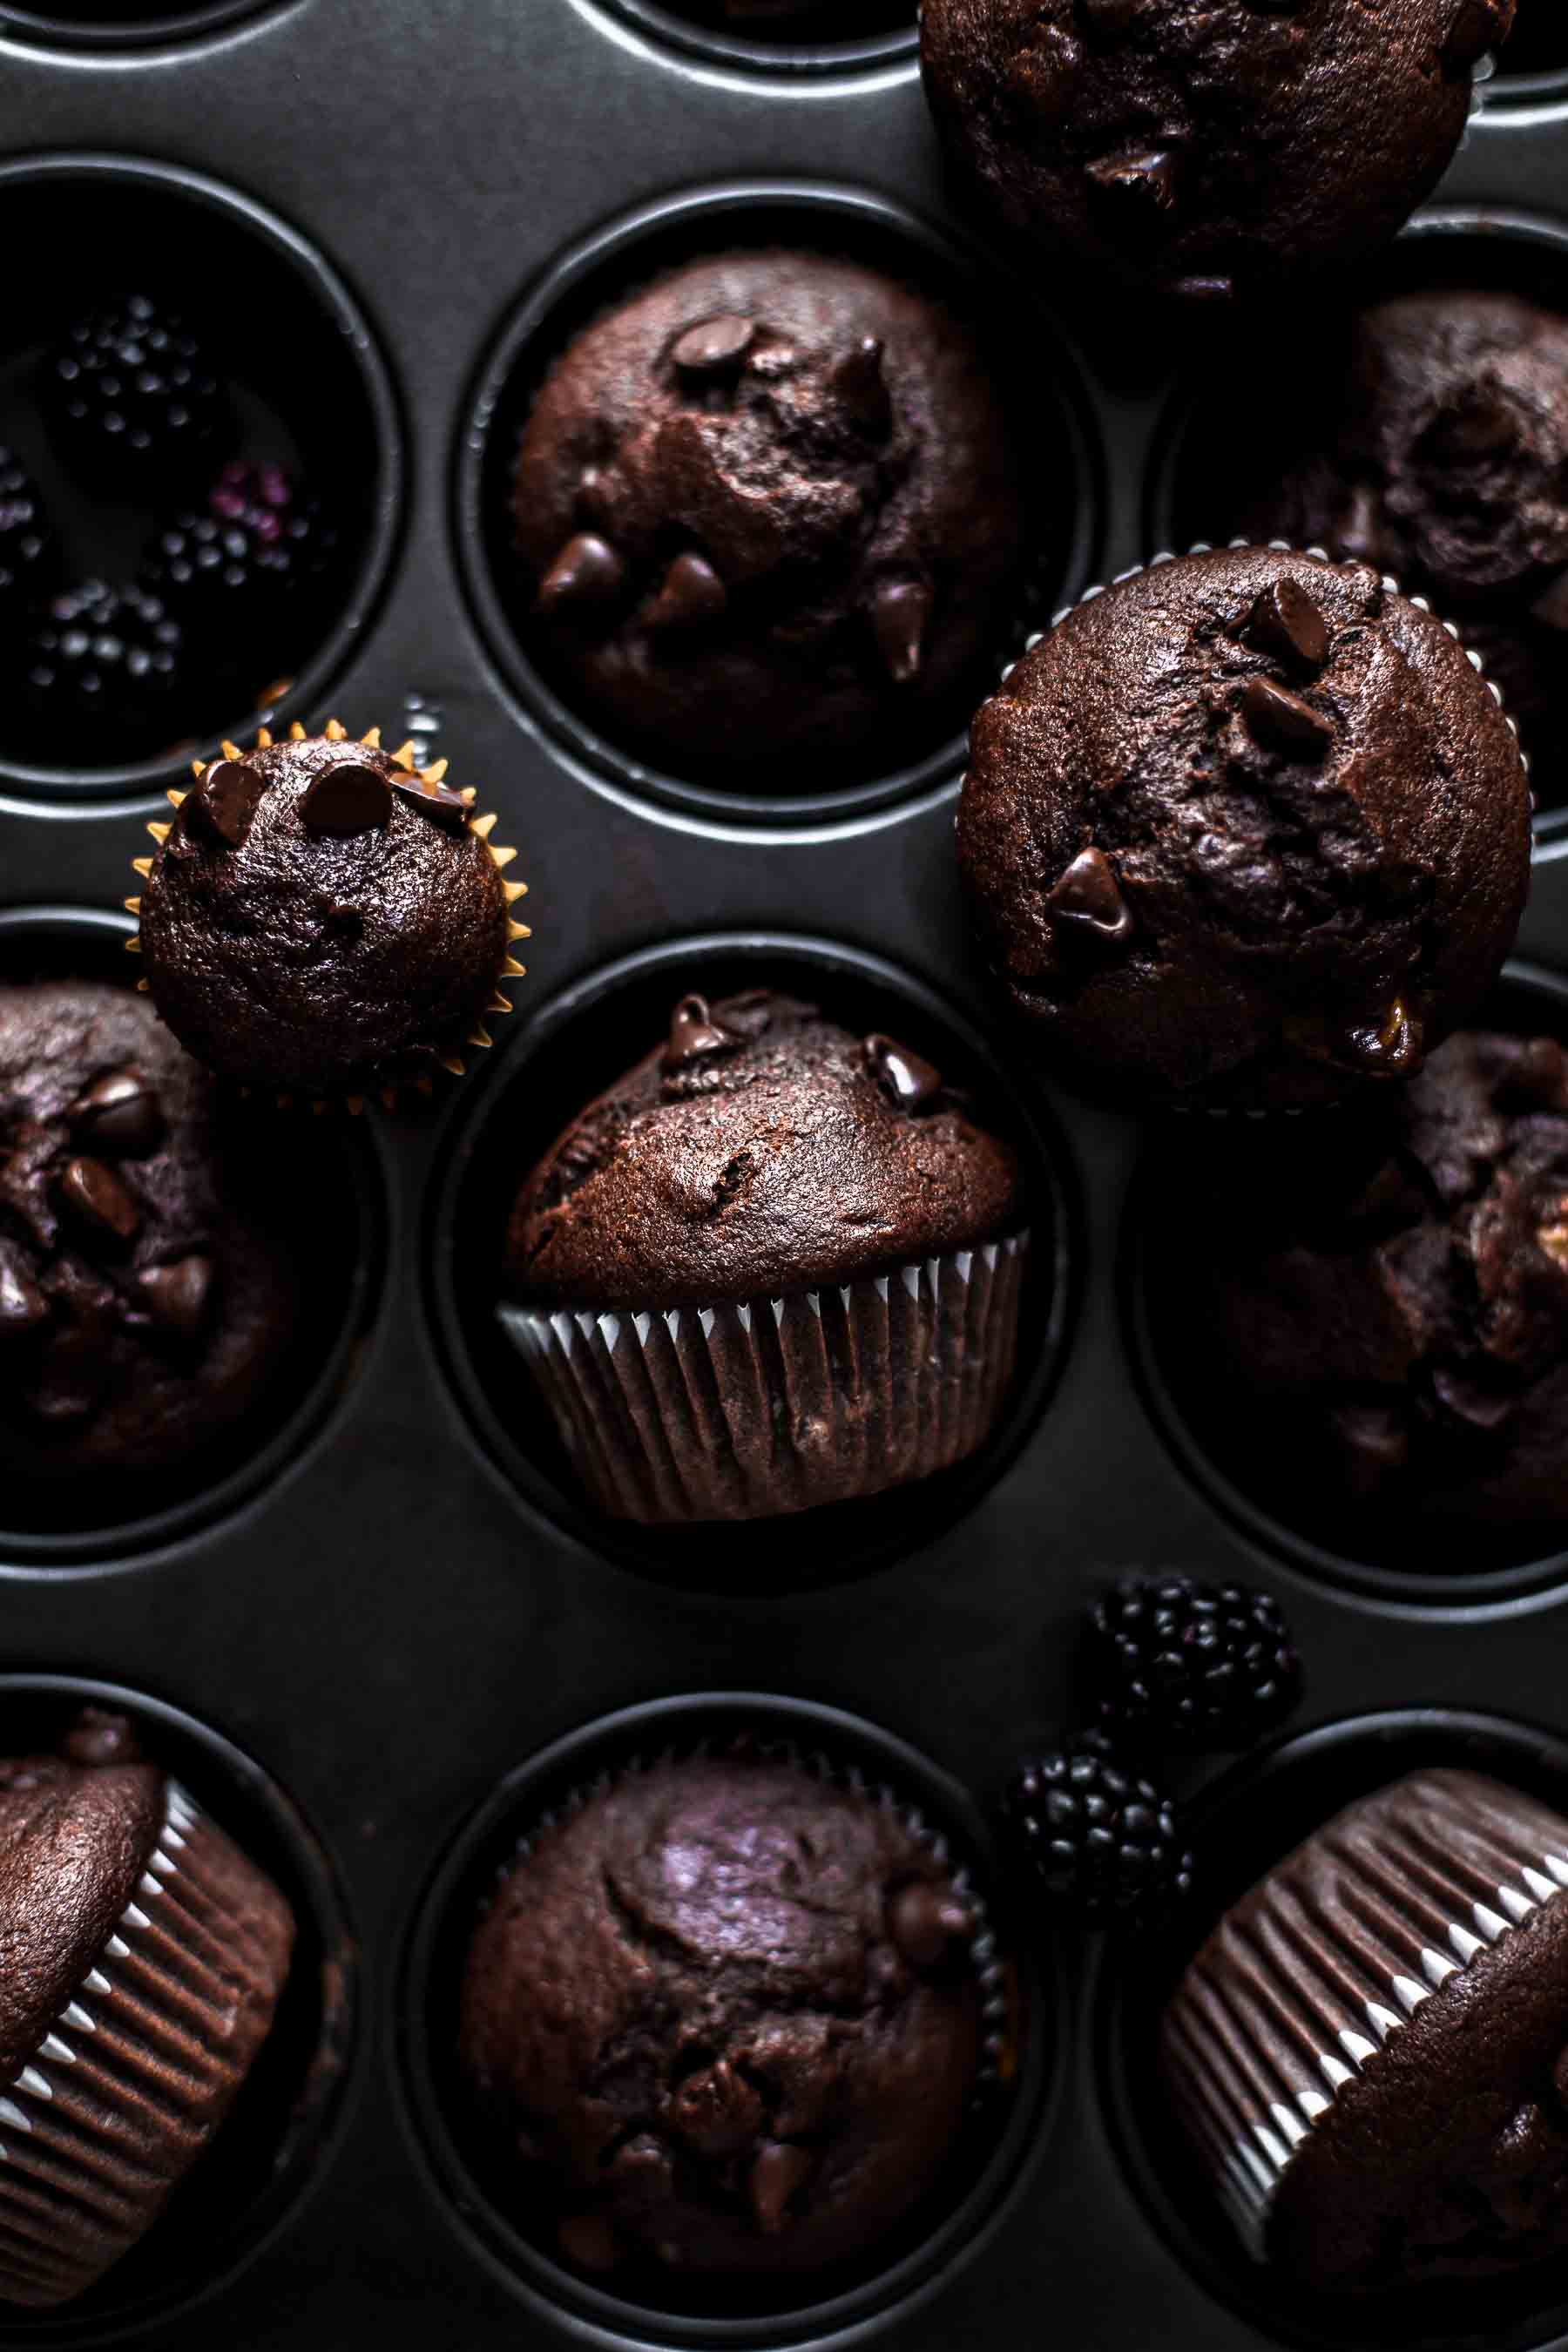 Baked Chocolate Banana Muffins in muffin pan